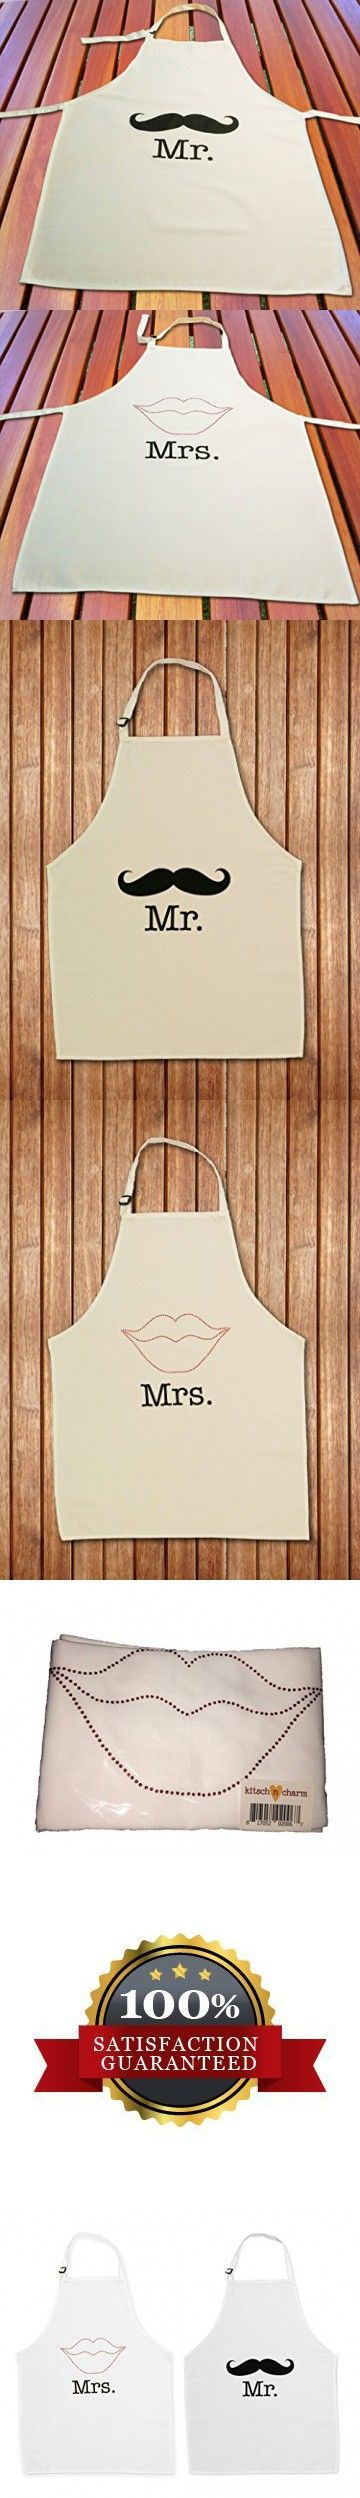 couples bridal shower gift ideas%0A Kitsch n Charm Mr  His and Hers Aprons with Mustache and Red Rhinestone  Lips  Fully Adjustable  Great Wedding Anniversary Bridal Shower or  Engagement Gift